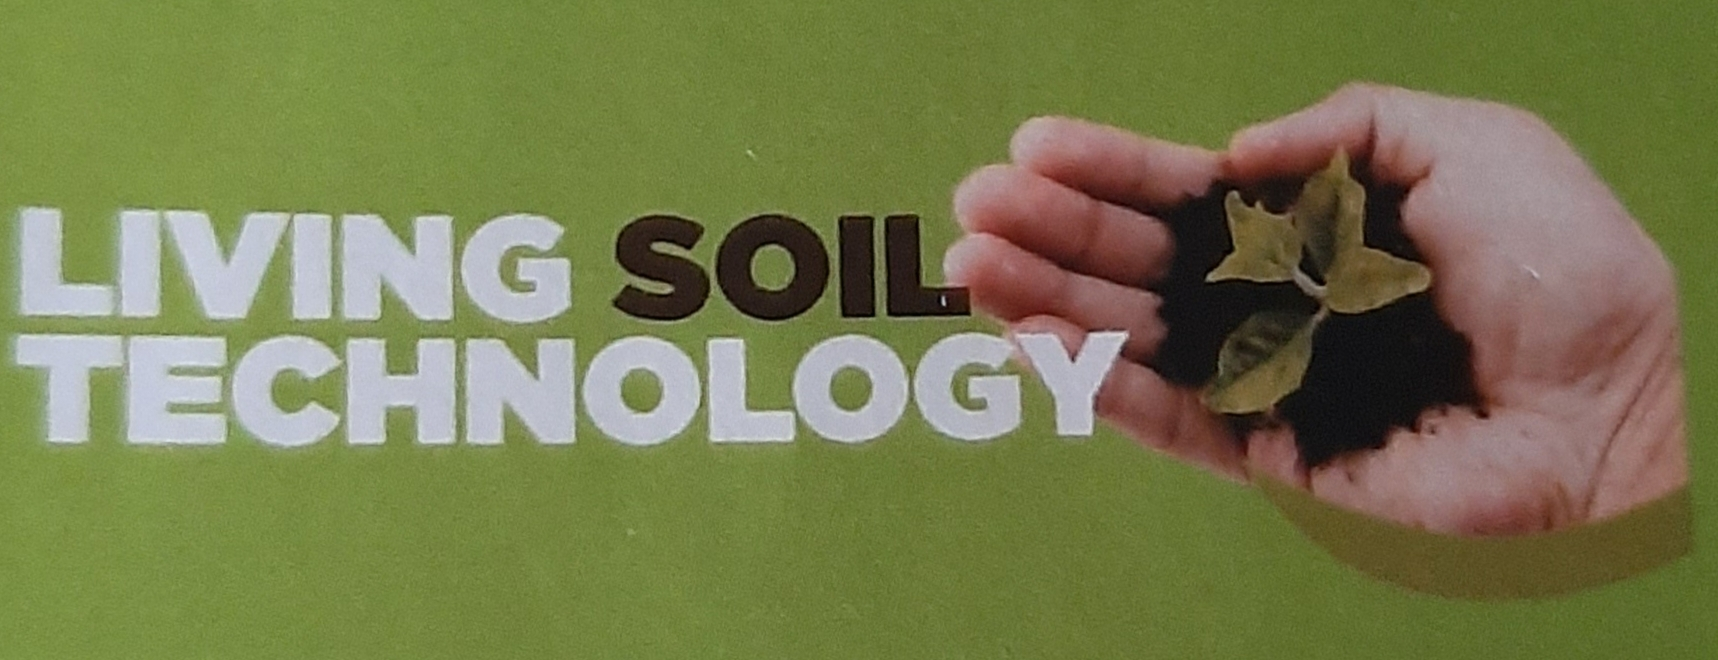 Living Soil Technology